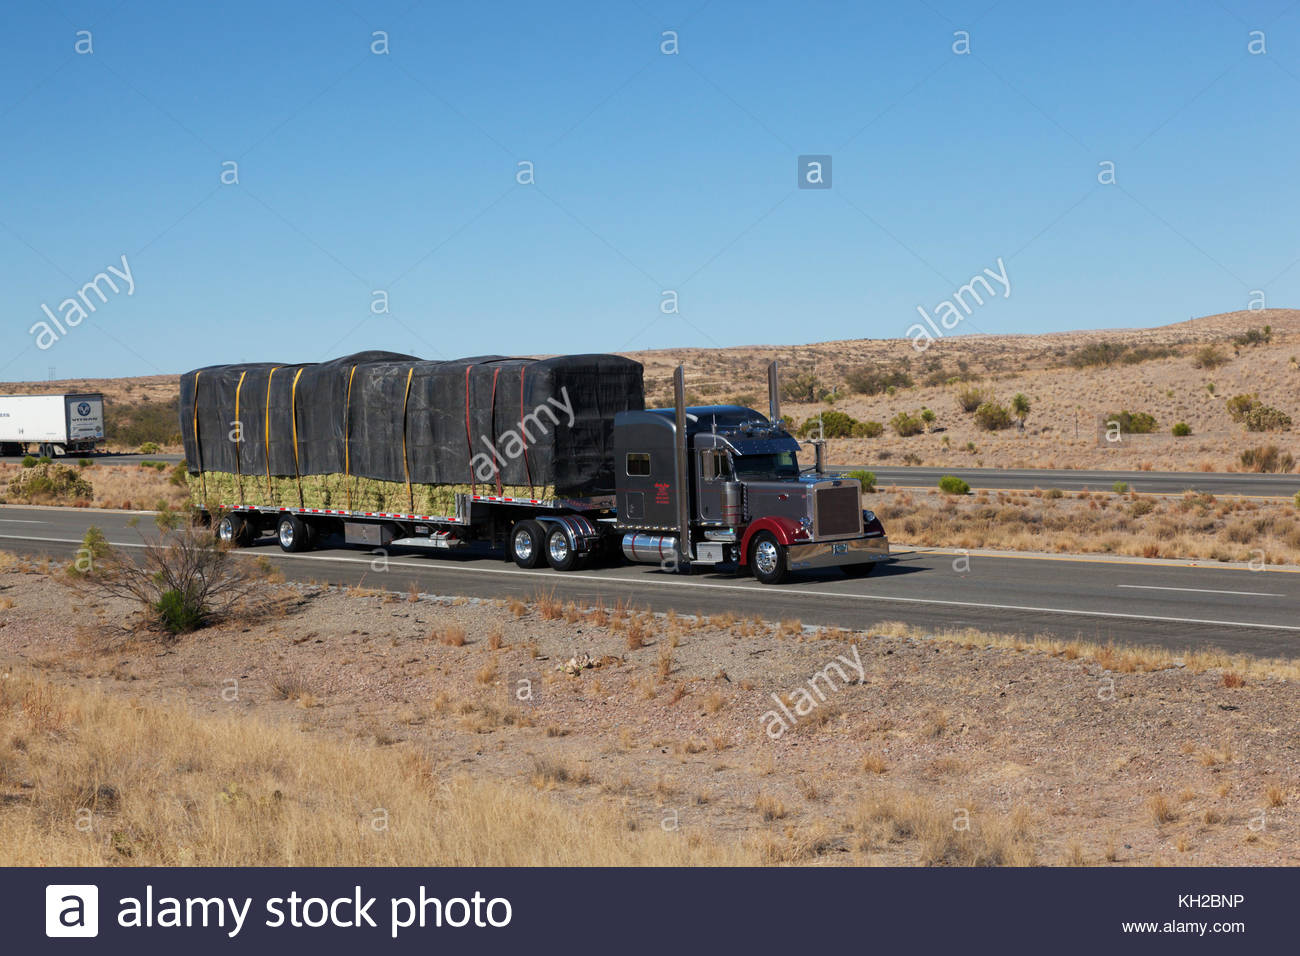 Semi-tractor trailer hauling hay in southeastern Arizona, USA, driver visible Stock Photo